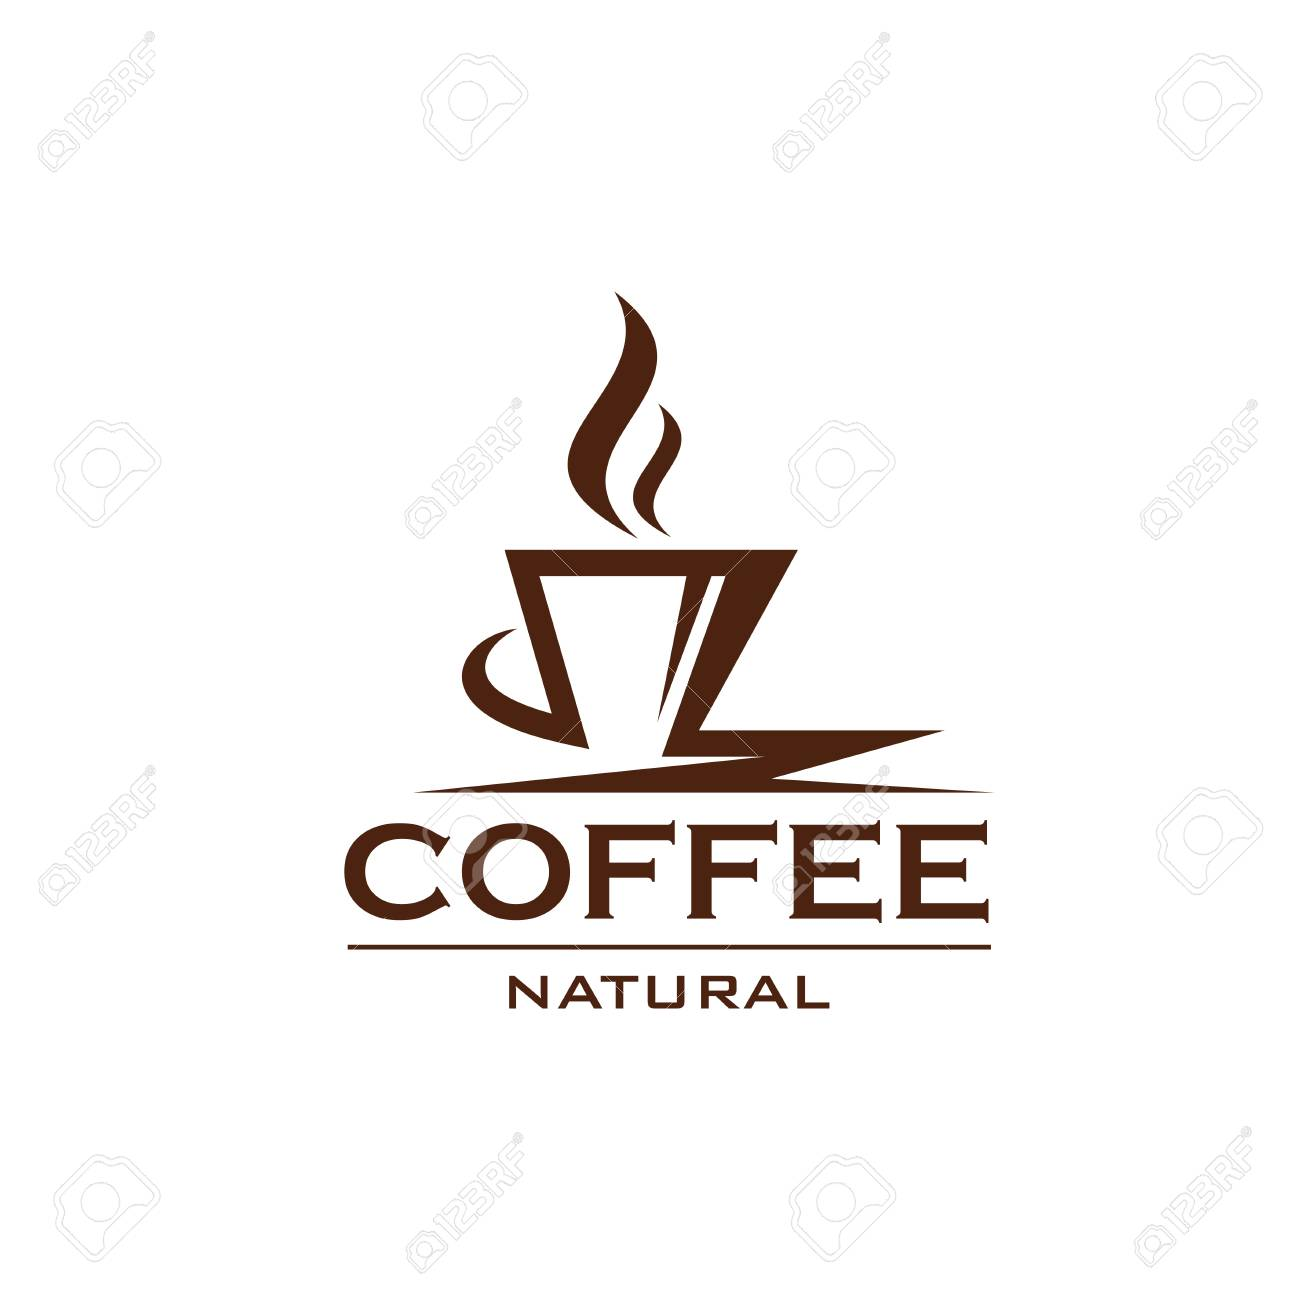 Coffee cup icon design for cafe or bar menu. Natural coffee design label isolated on white background. Concept of hot drinks and coffee beverages. Coffee shop abstract badge - 114520855